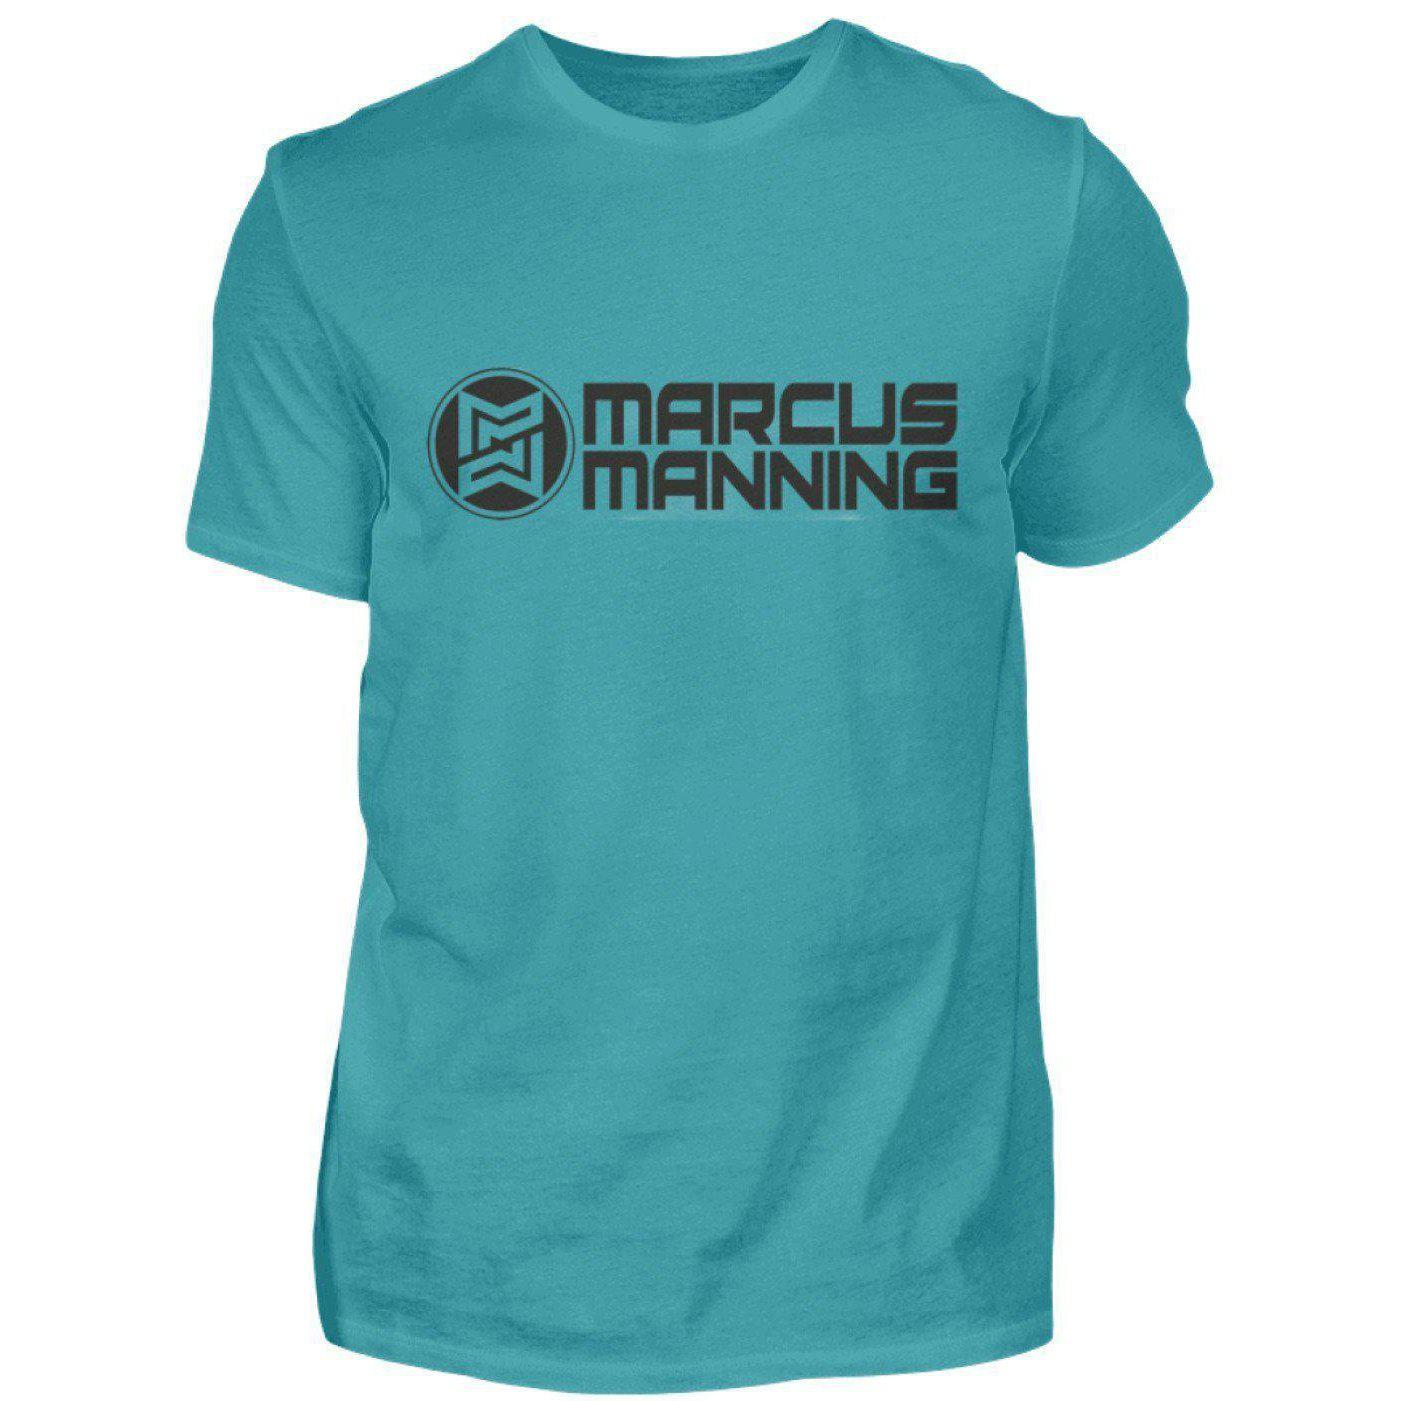 Marcus Manning Light Collection - Men's Shirt Men's Basic T-Shirt Pool Blue / S - Rave On!® the club & techno scene shop for cool young fashion streetwear style & fashion outfits + sexy festival 420 stuff